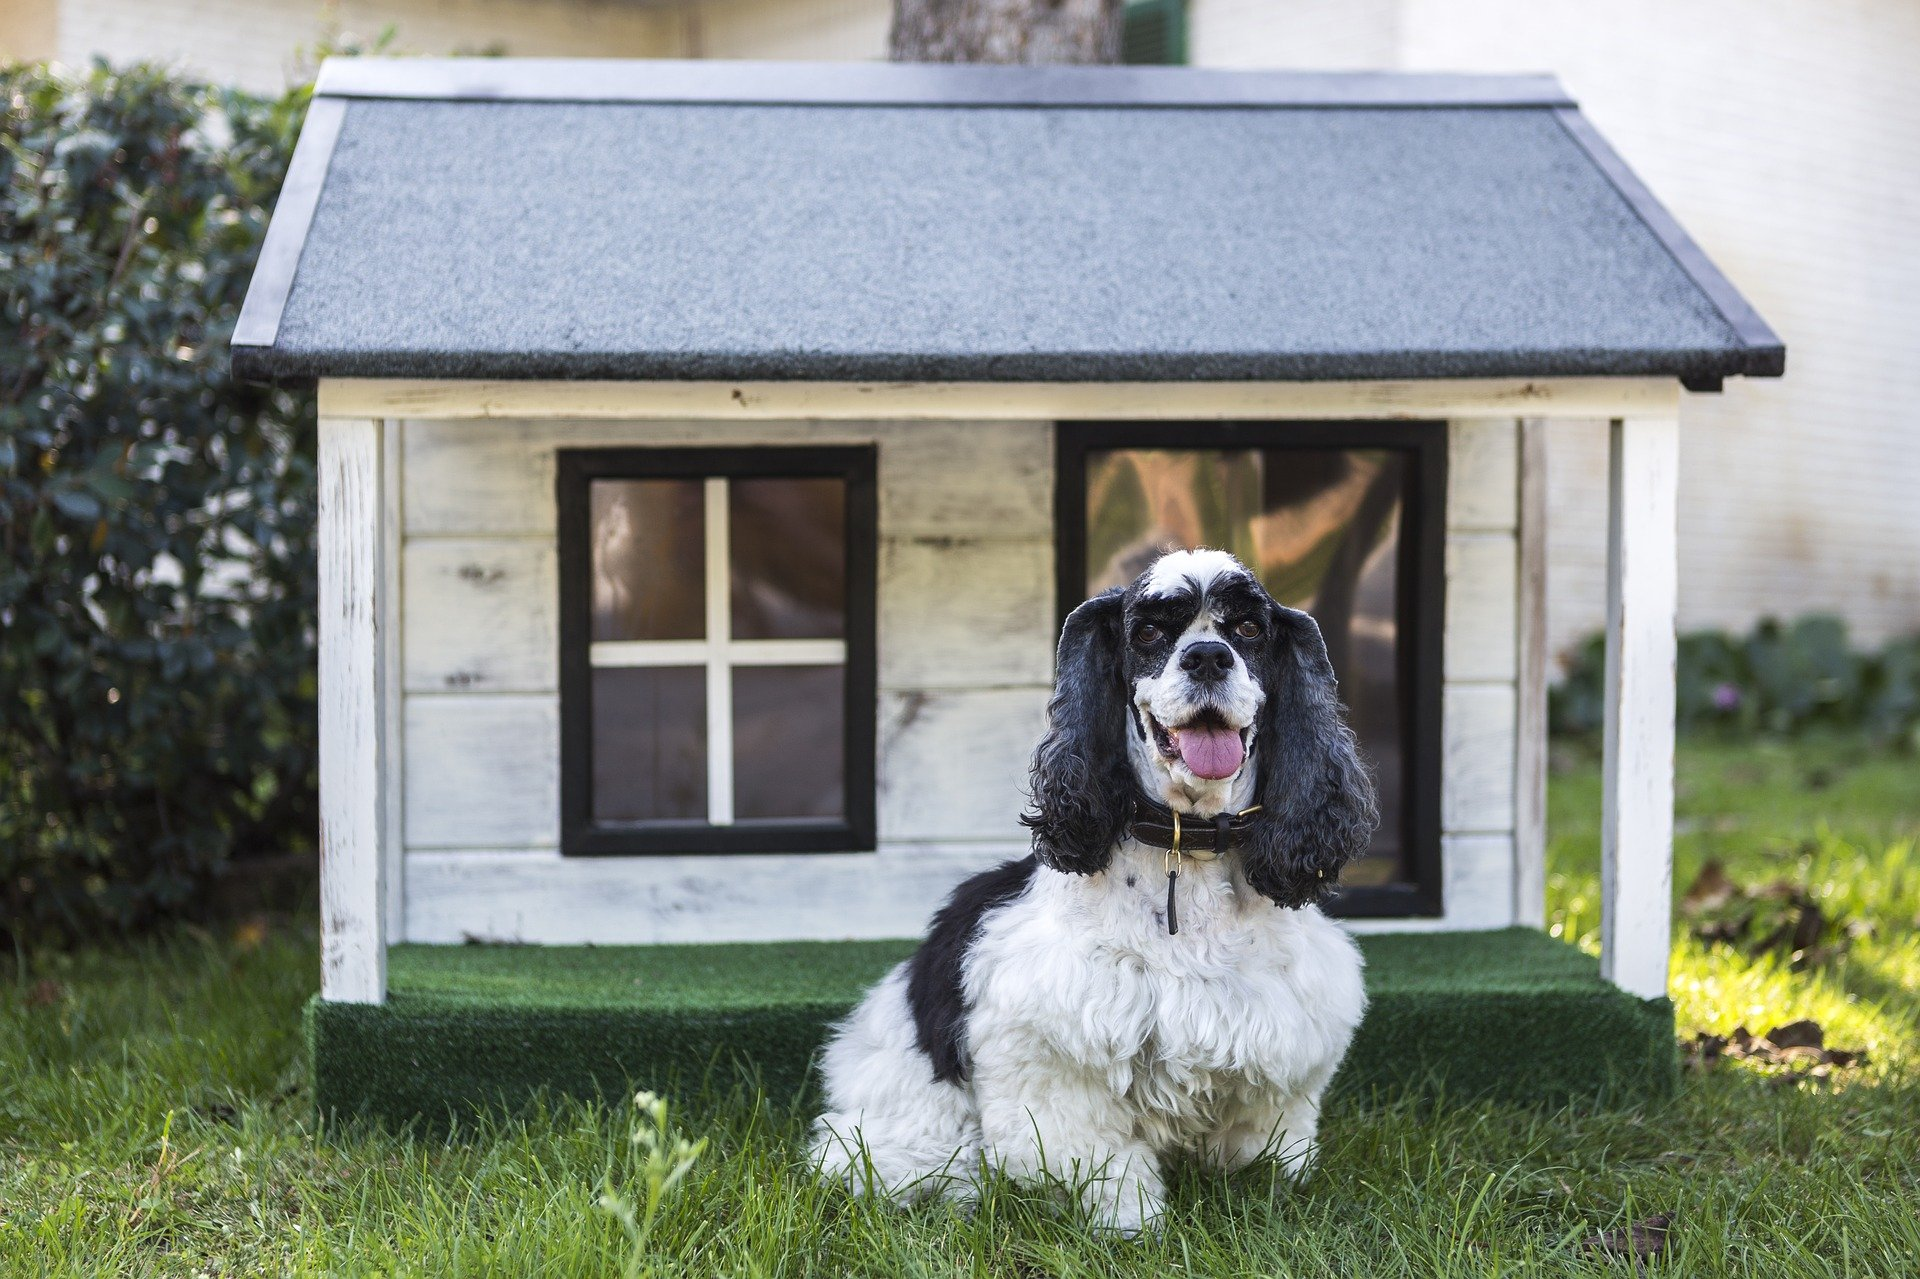 How To Heat A Dog House Without Electricity